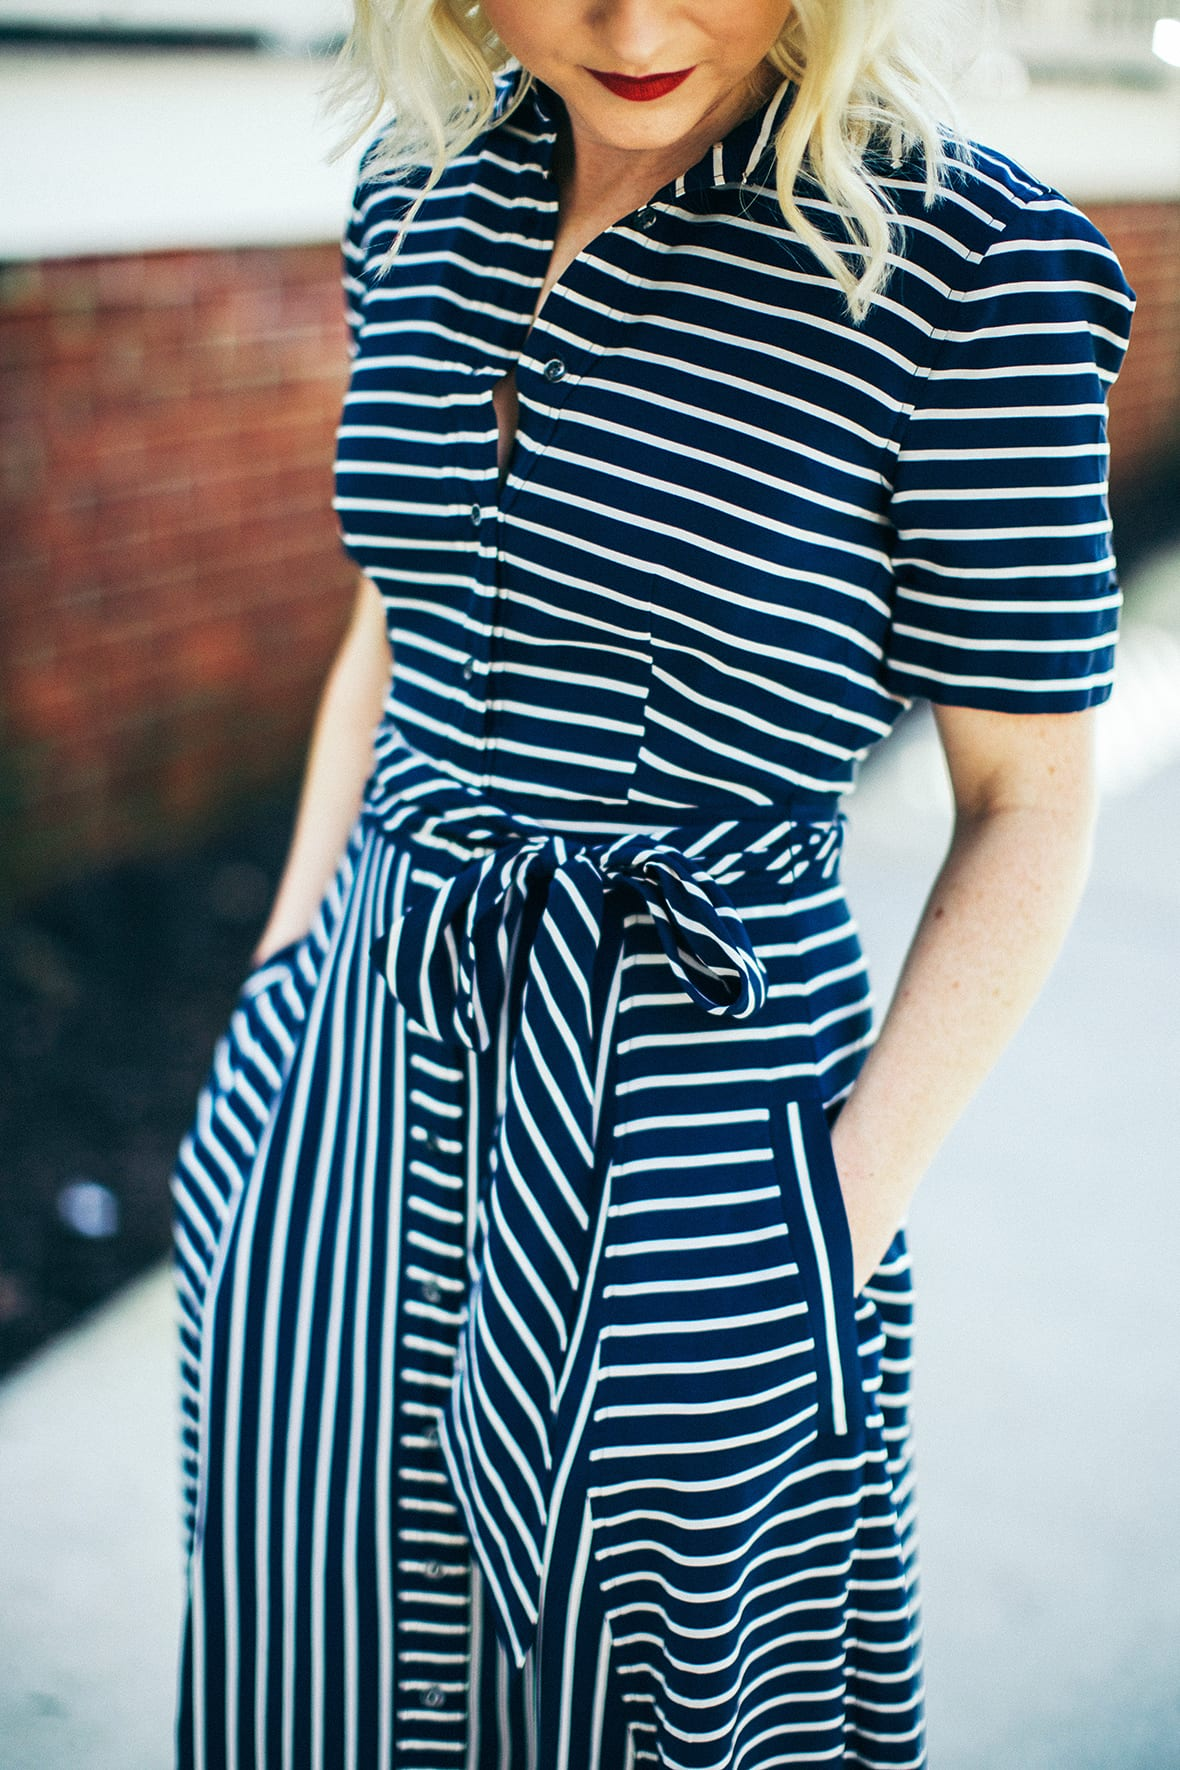 Poor Little It Girl - Stripe Dress - @poorlilitgirl